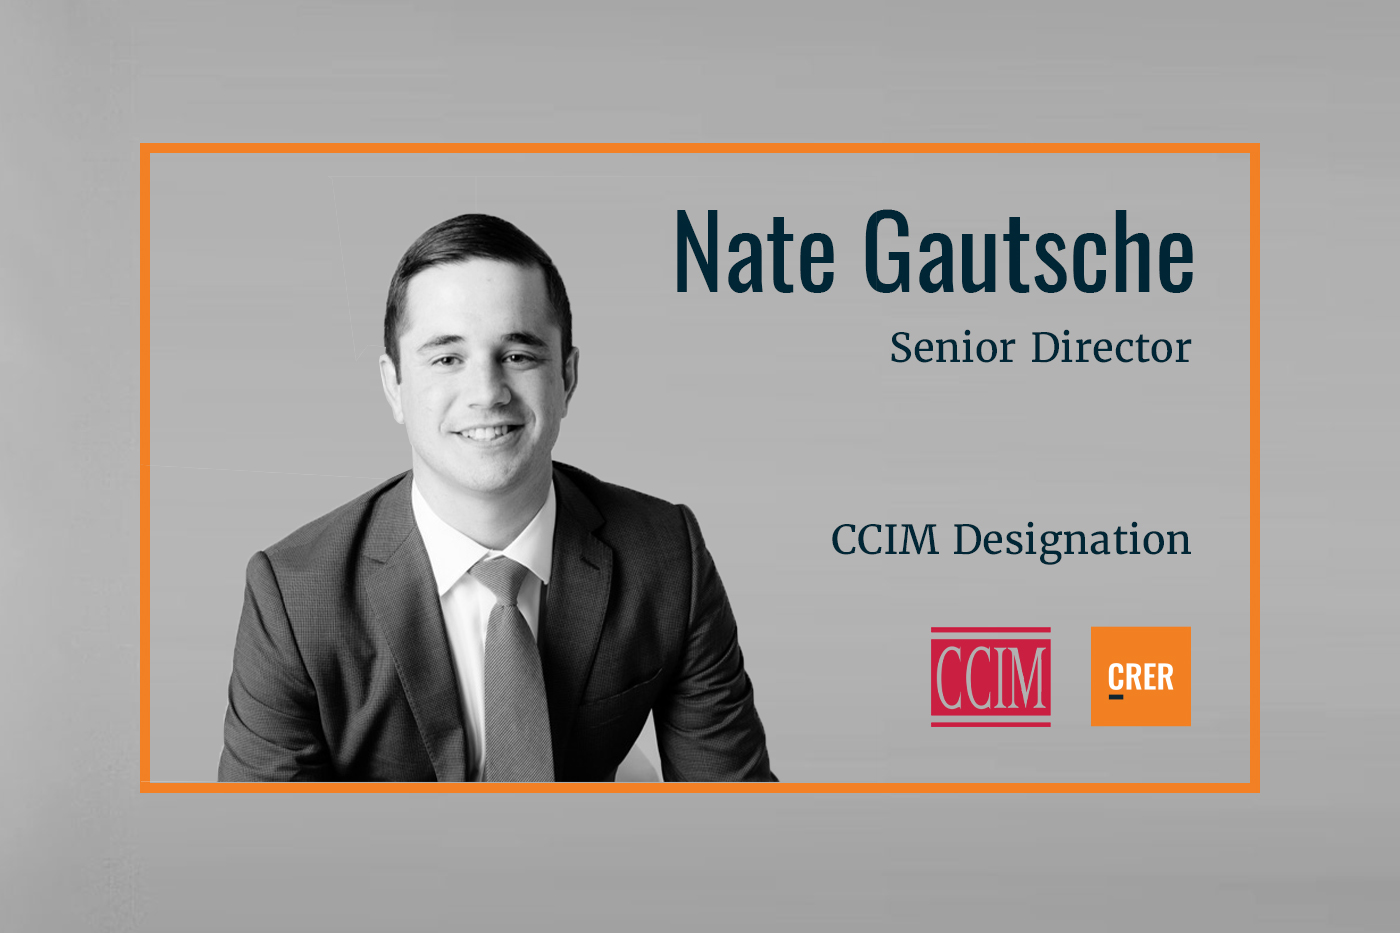 Nate Gautsche Becomes a Member of CCIM